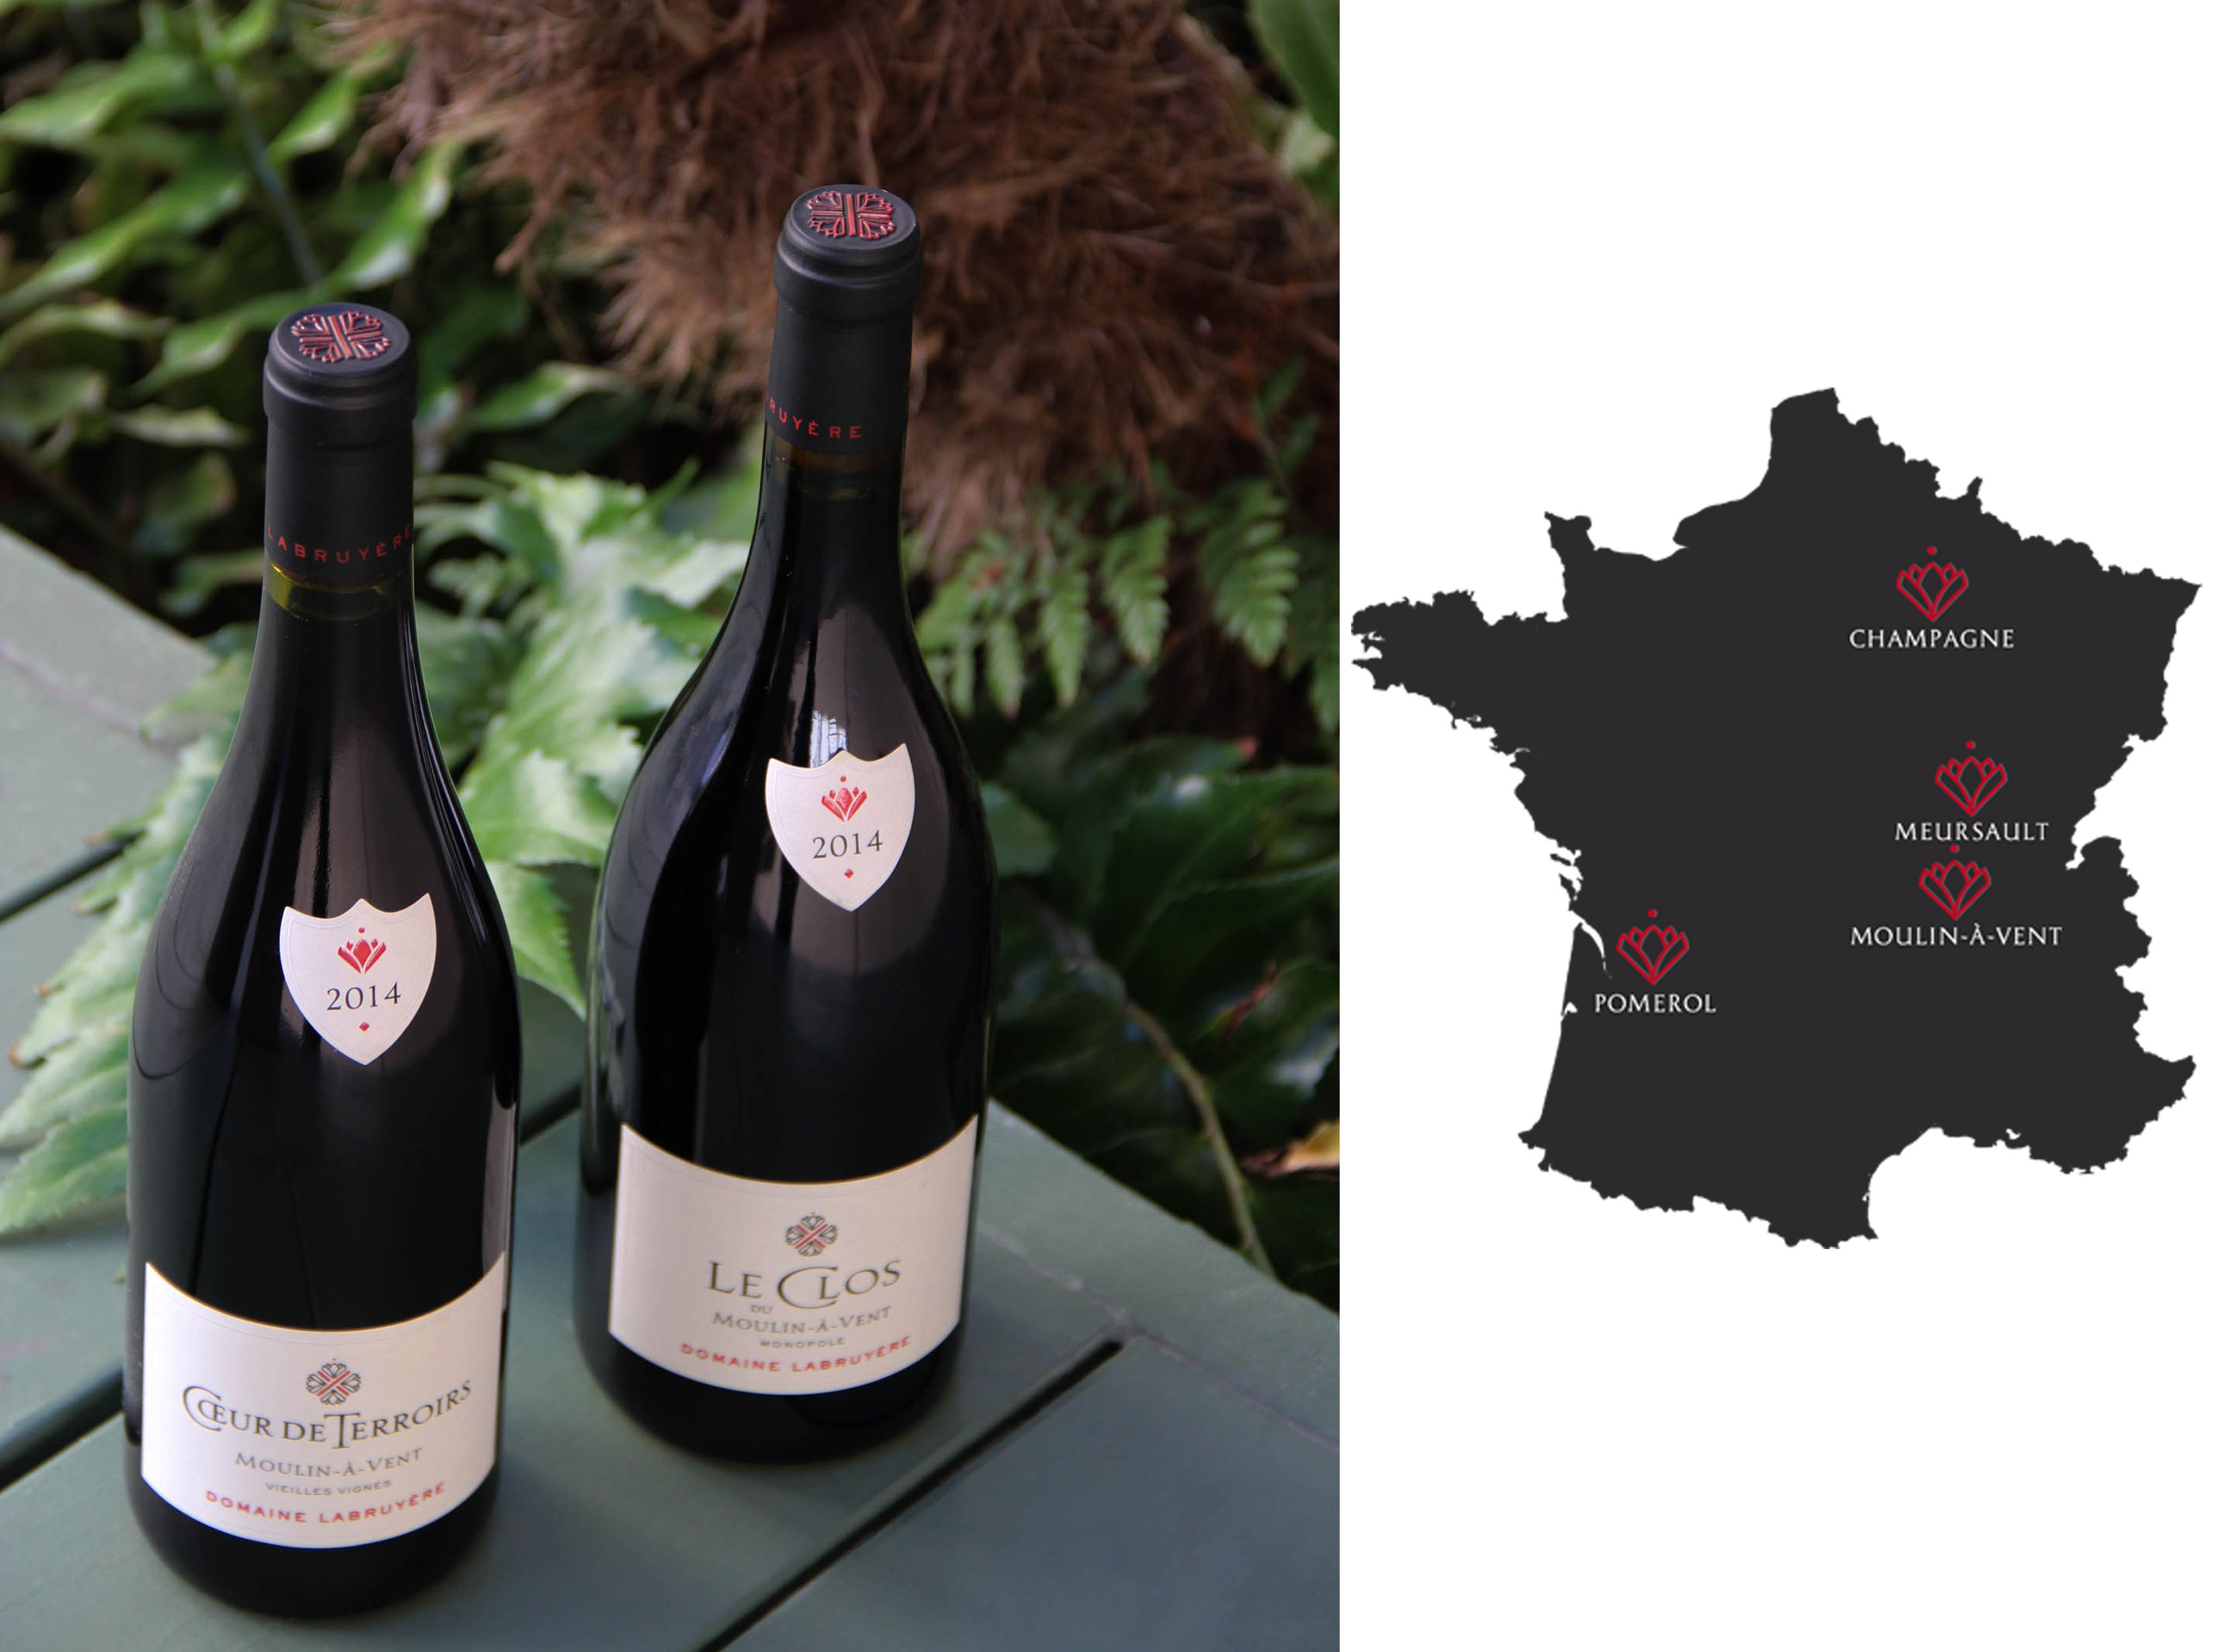 Domaine Labruyere wines & map